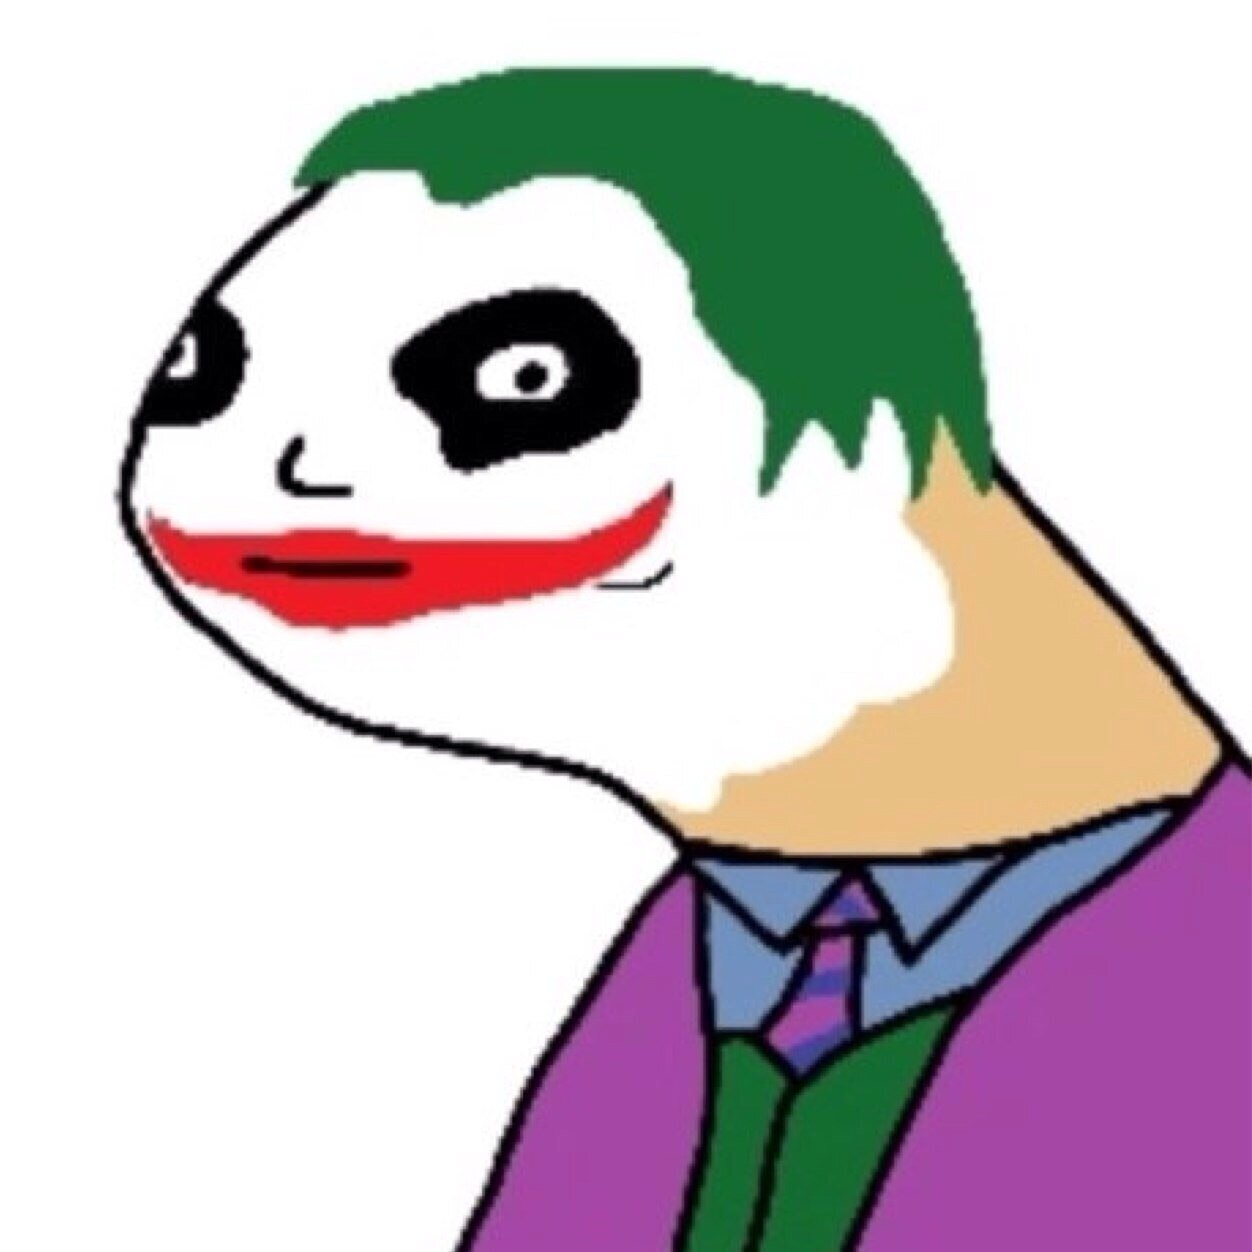 Joker clipart real #4